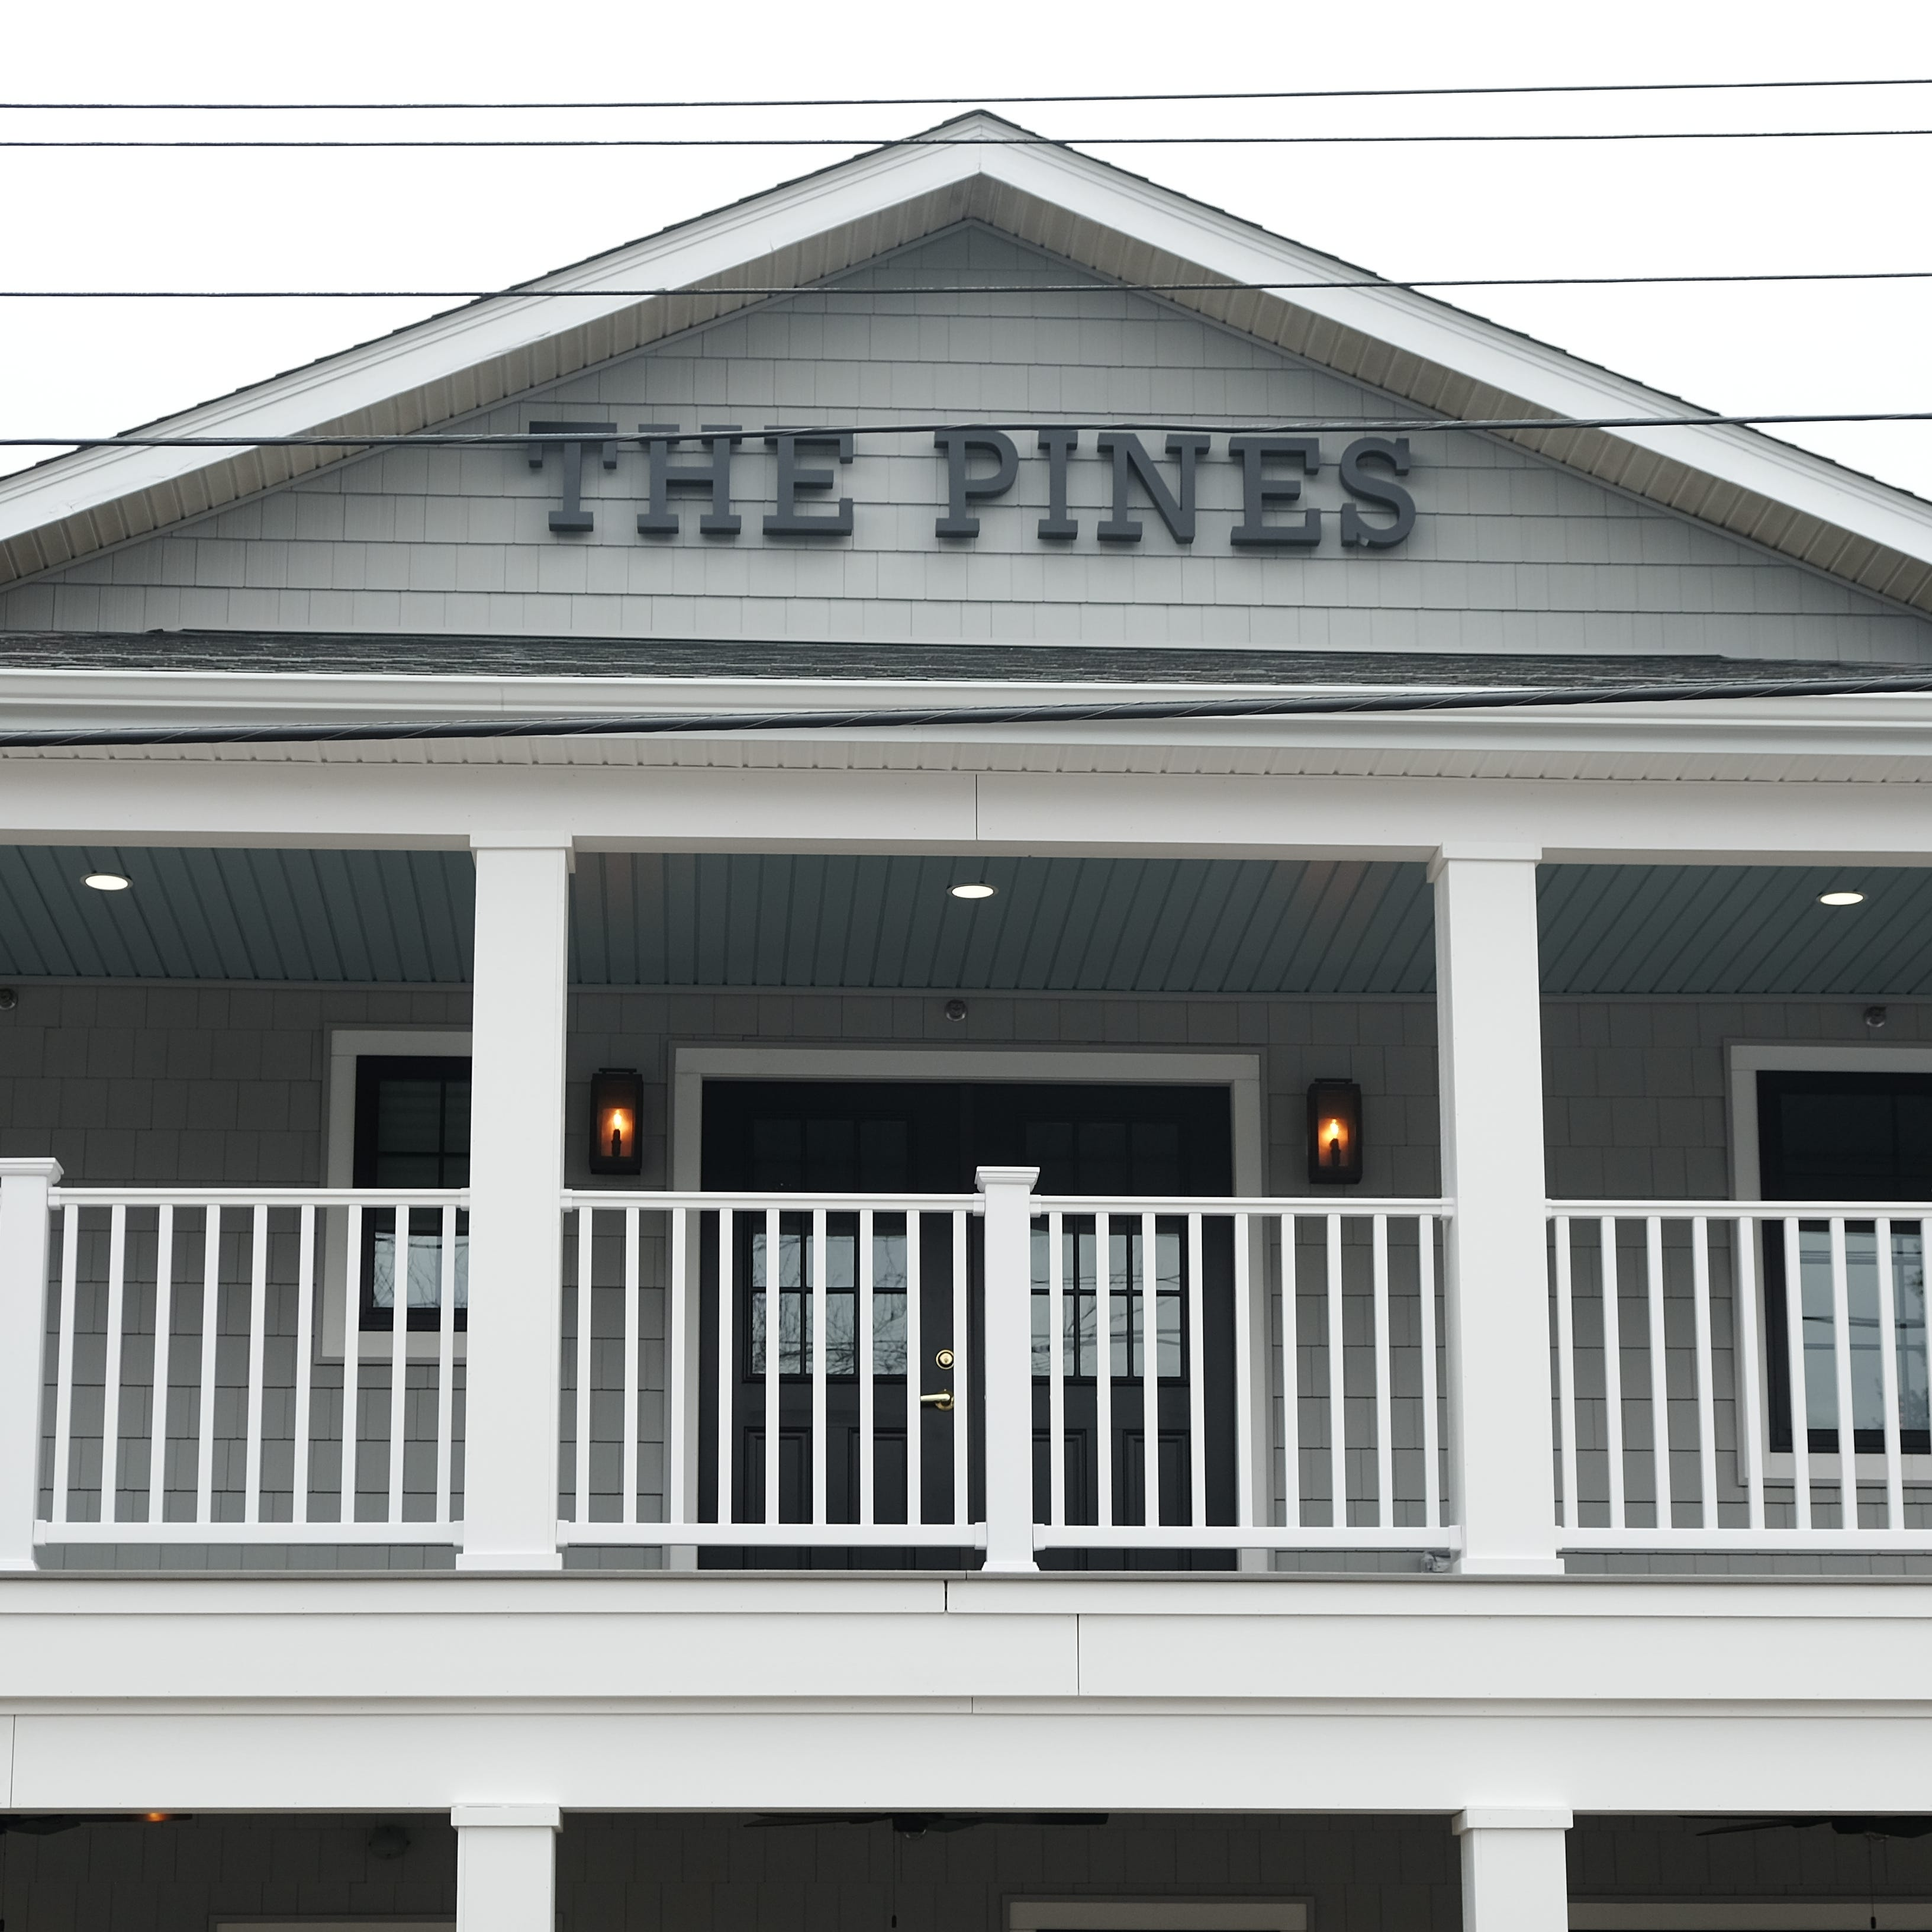 What to expect from new Rehoboth restaurant The Pines when it opens next week